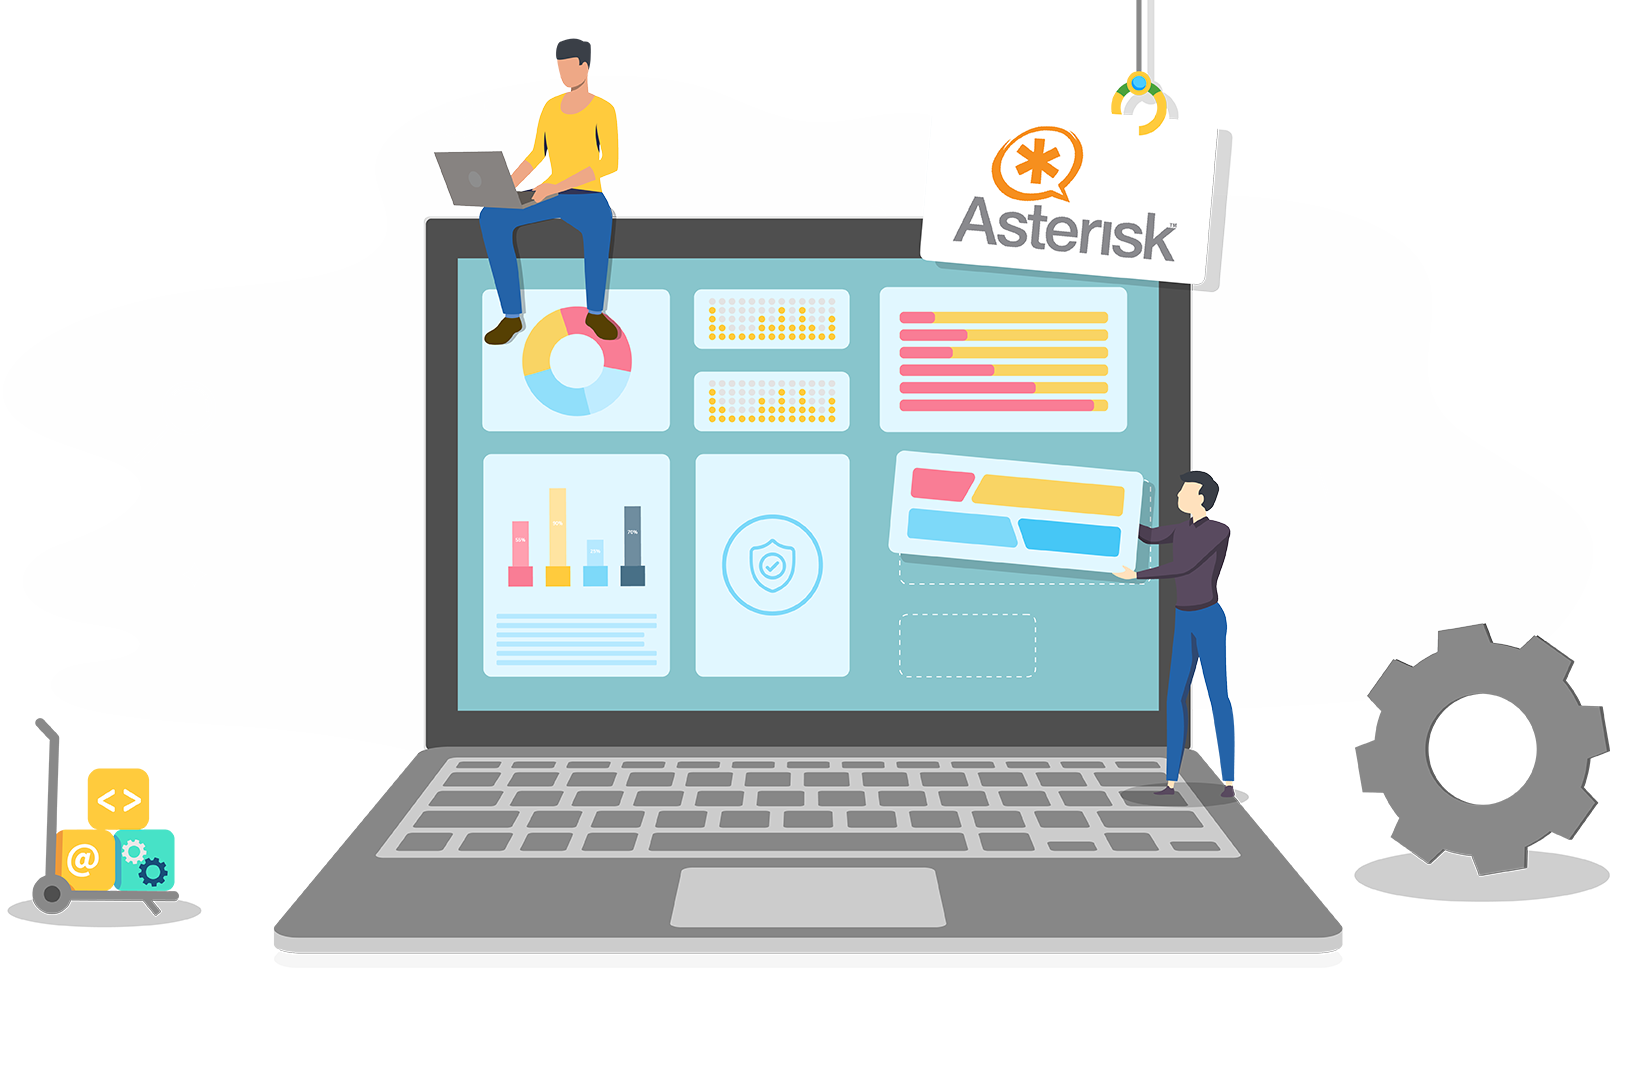 Asterisk support